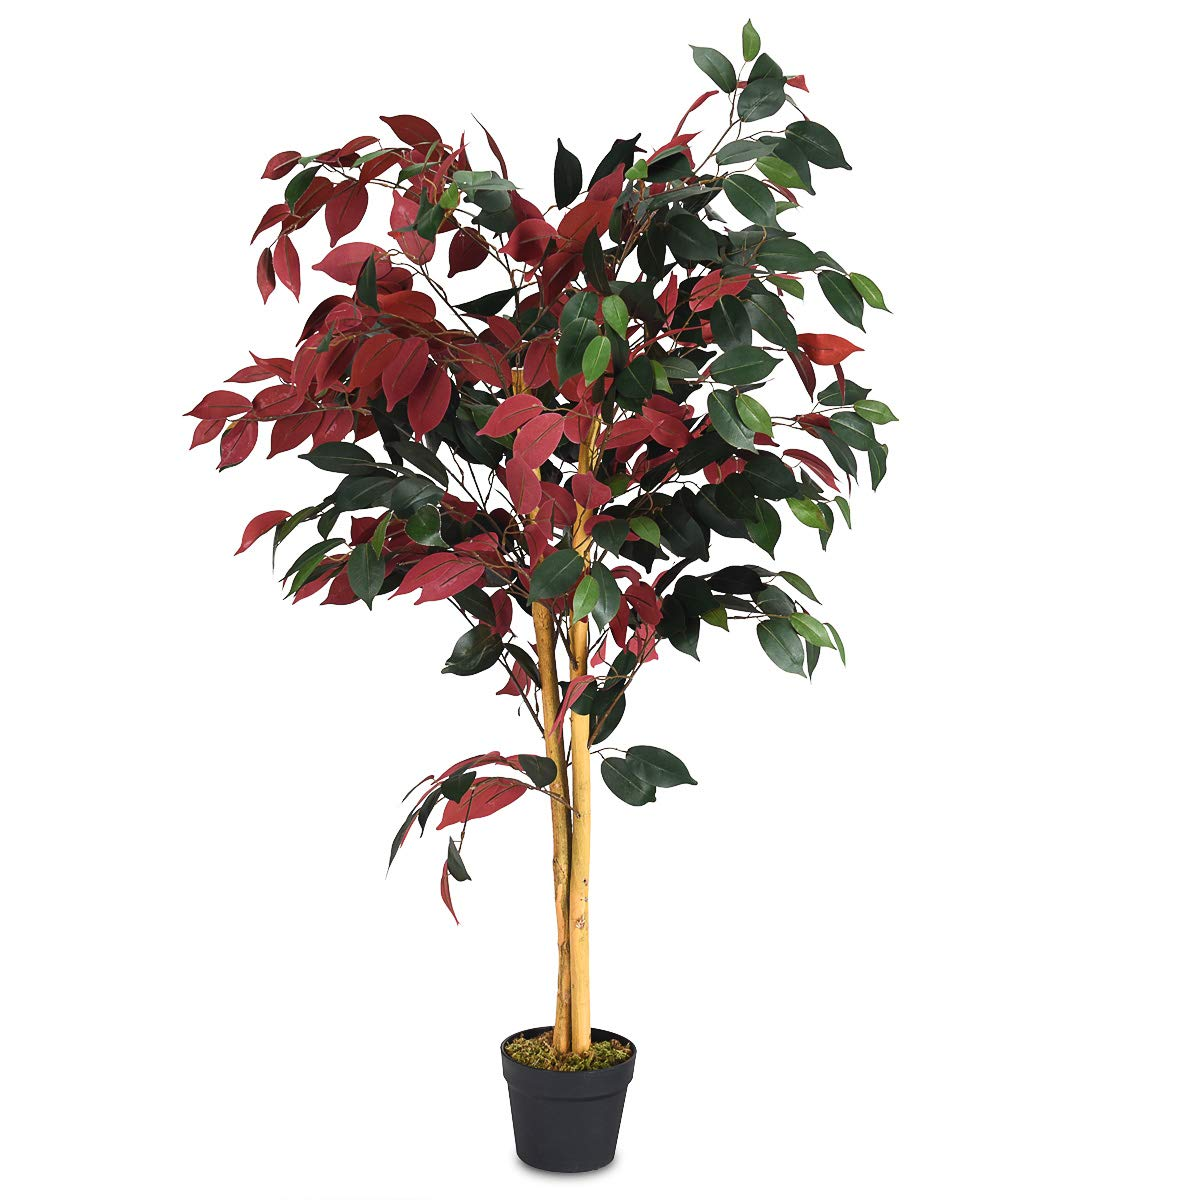 BestComfort Natural Greener Artificial Silk Tree, Decorative Indoor House Plant,Artificial Leafy Tree for Home Decor